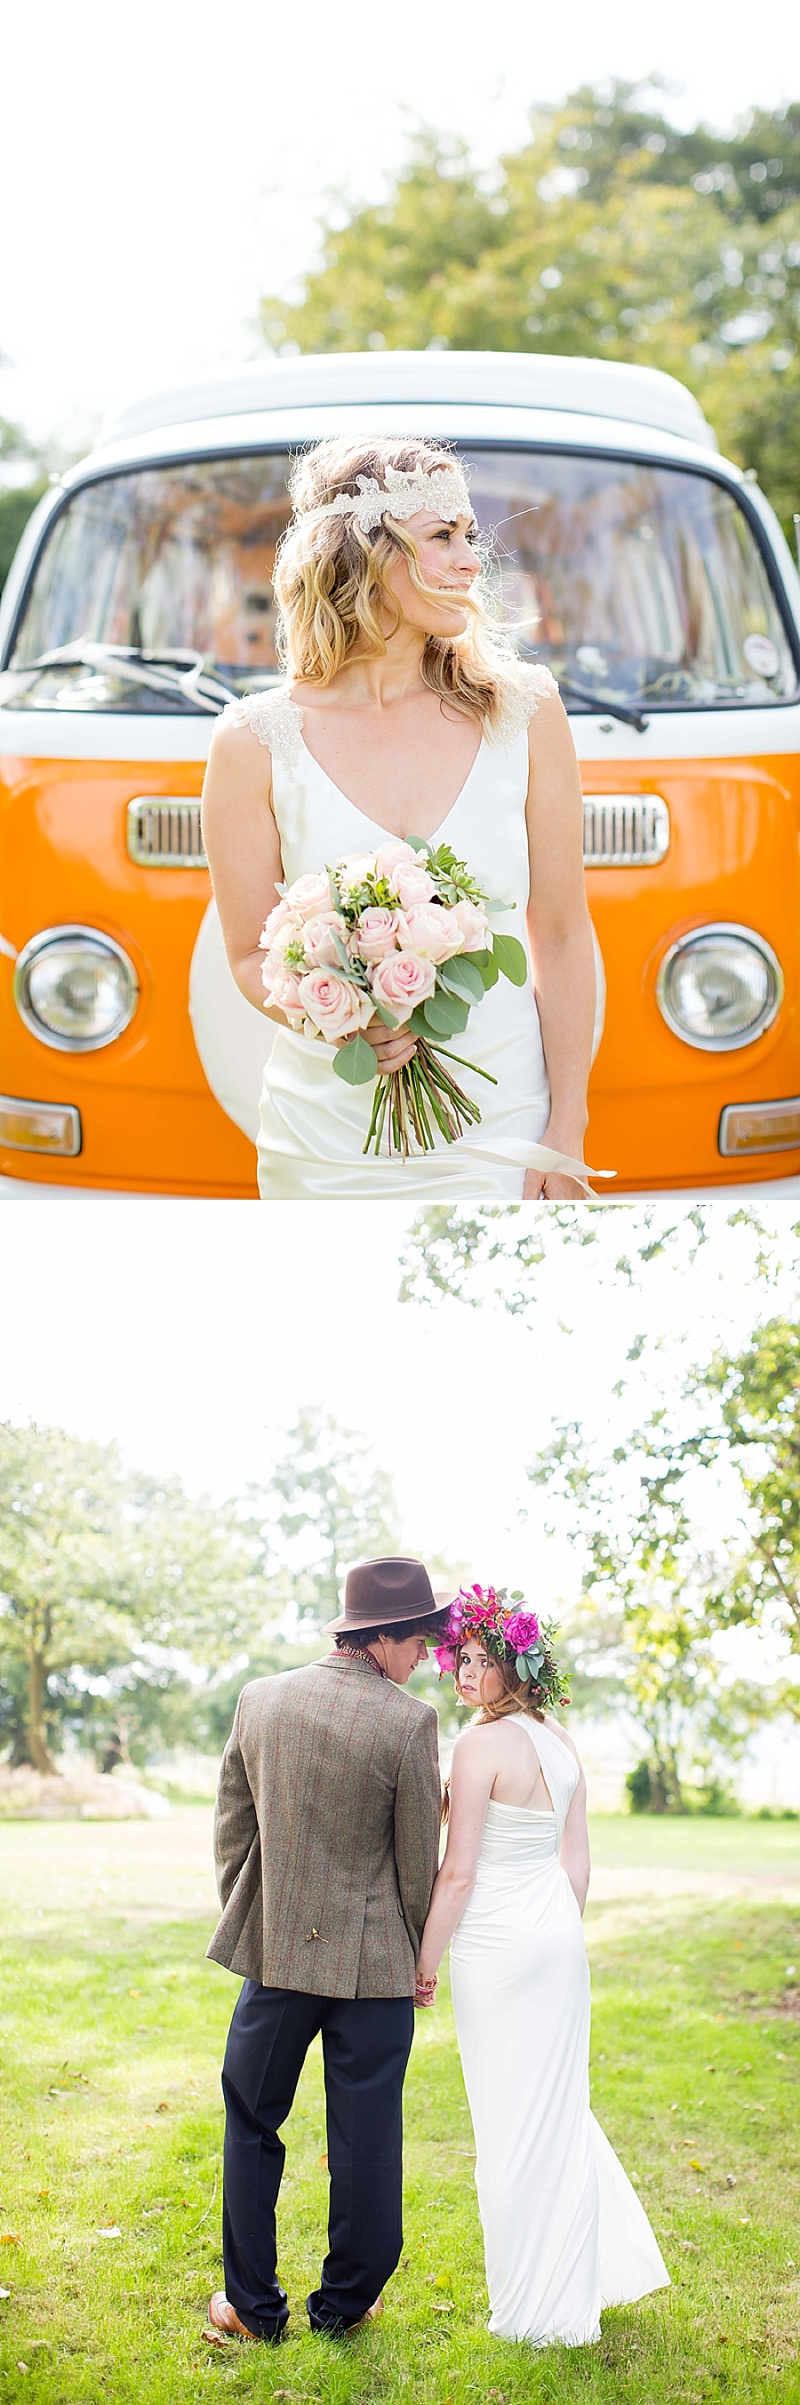 A bohemian wedding inspiration feature with a fresh flower crown backless dress and cute retro camper van_0064